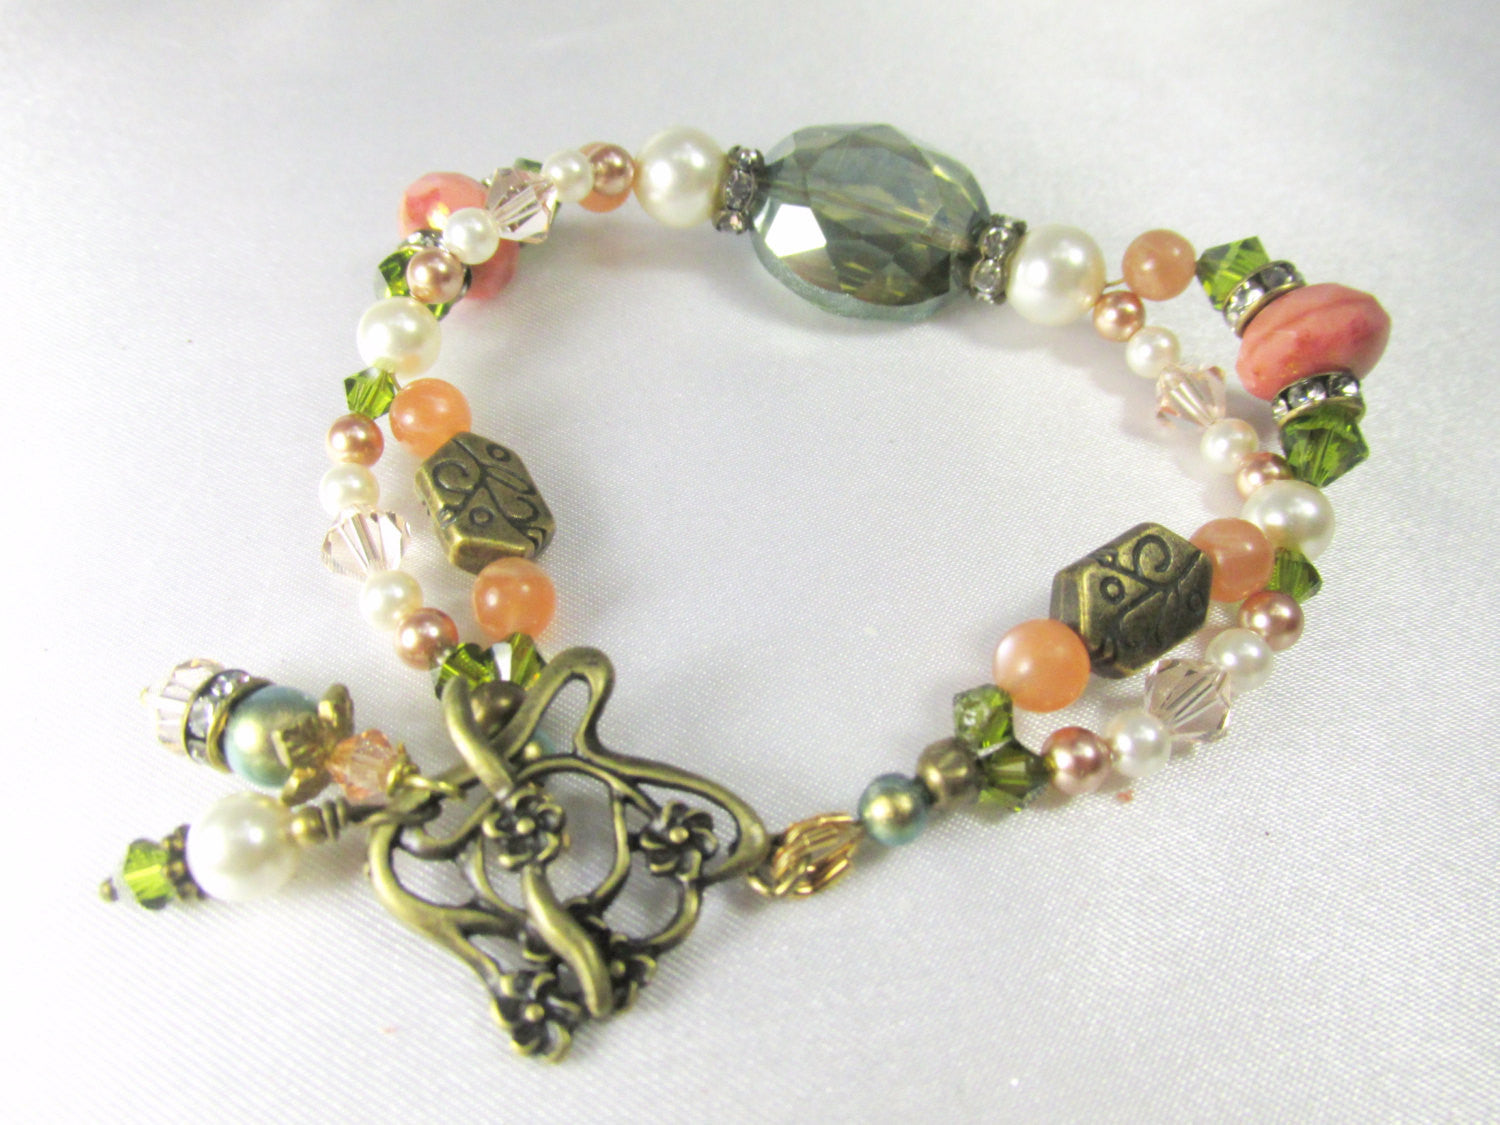 Antique Brass Bracelet in Olive Green and Coral with Moonstone Gemstones - Odyssey Creations